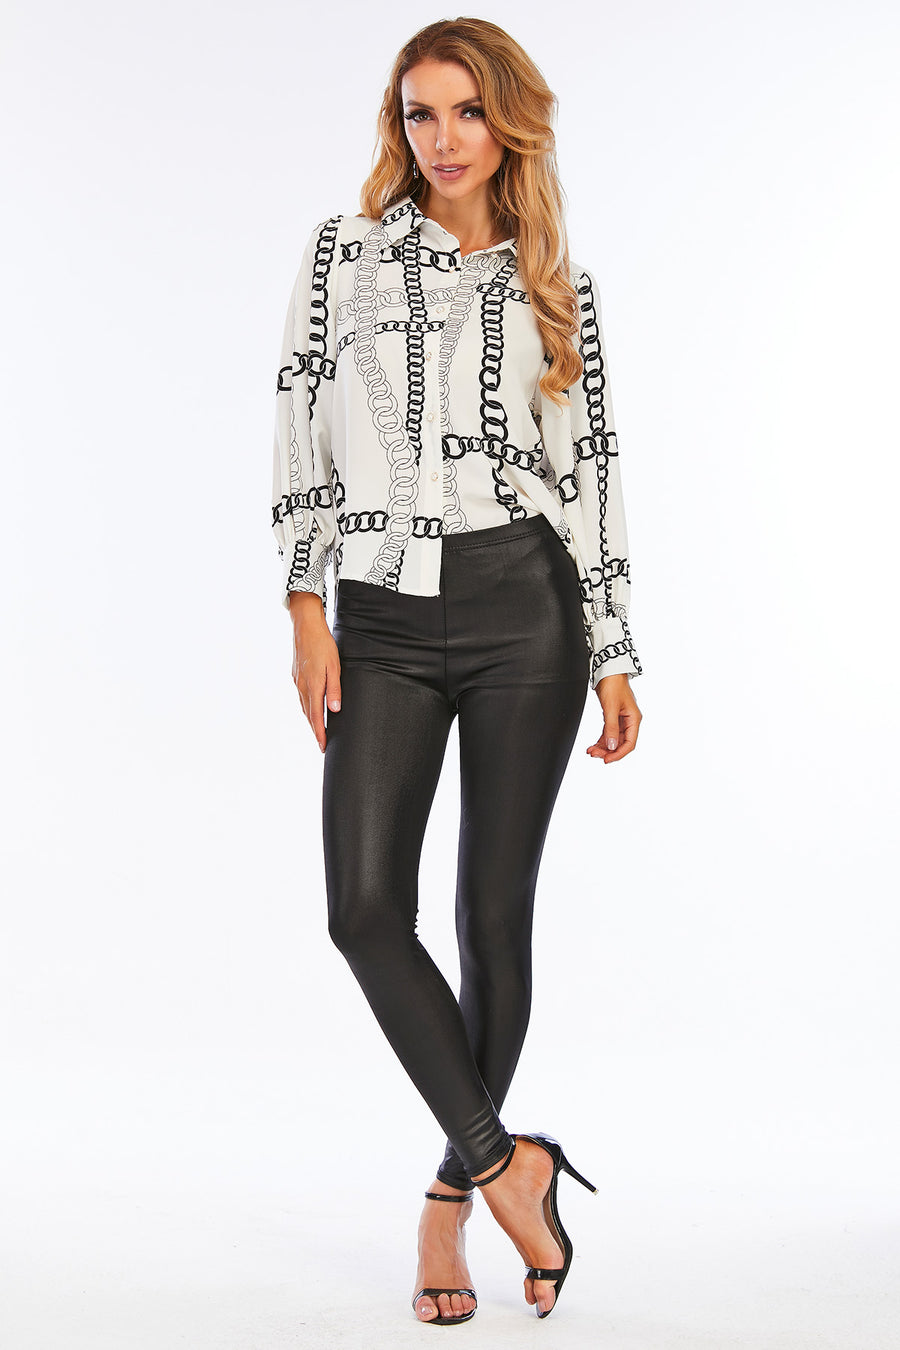 Mantra Pakistan Black & White Chain Printed Top | Western Wear